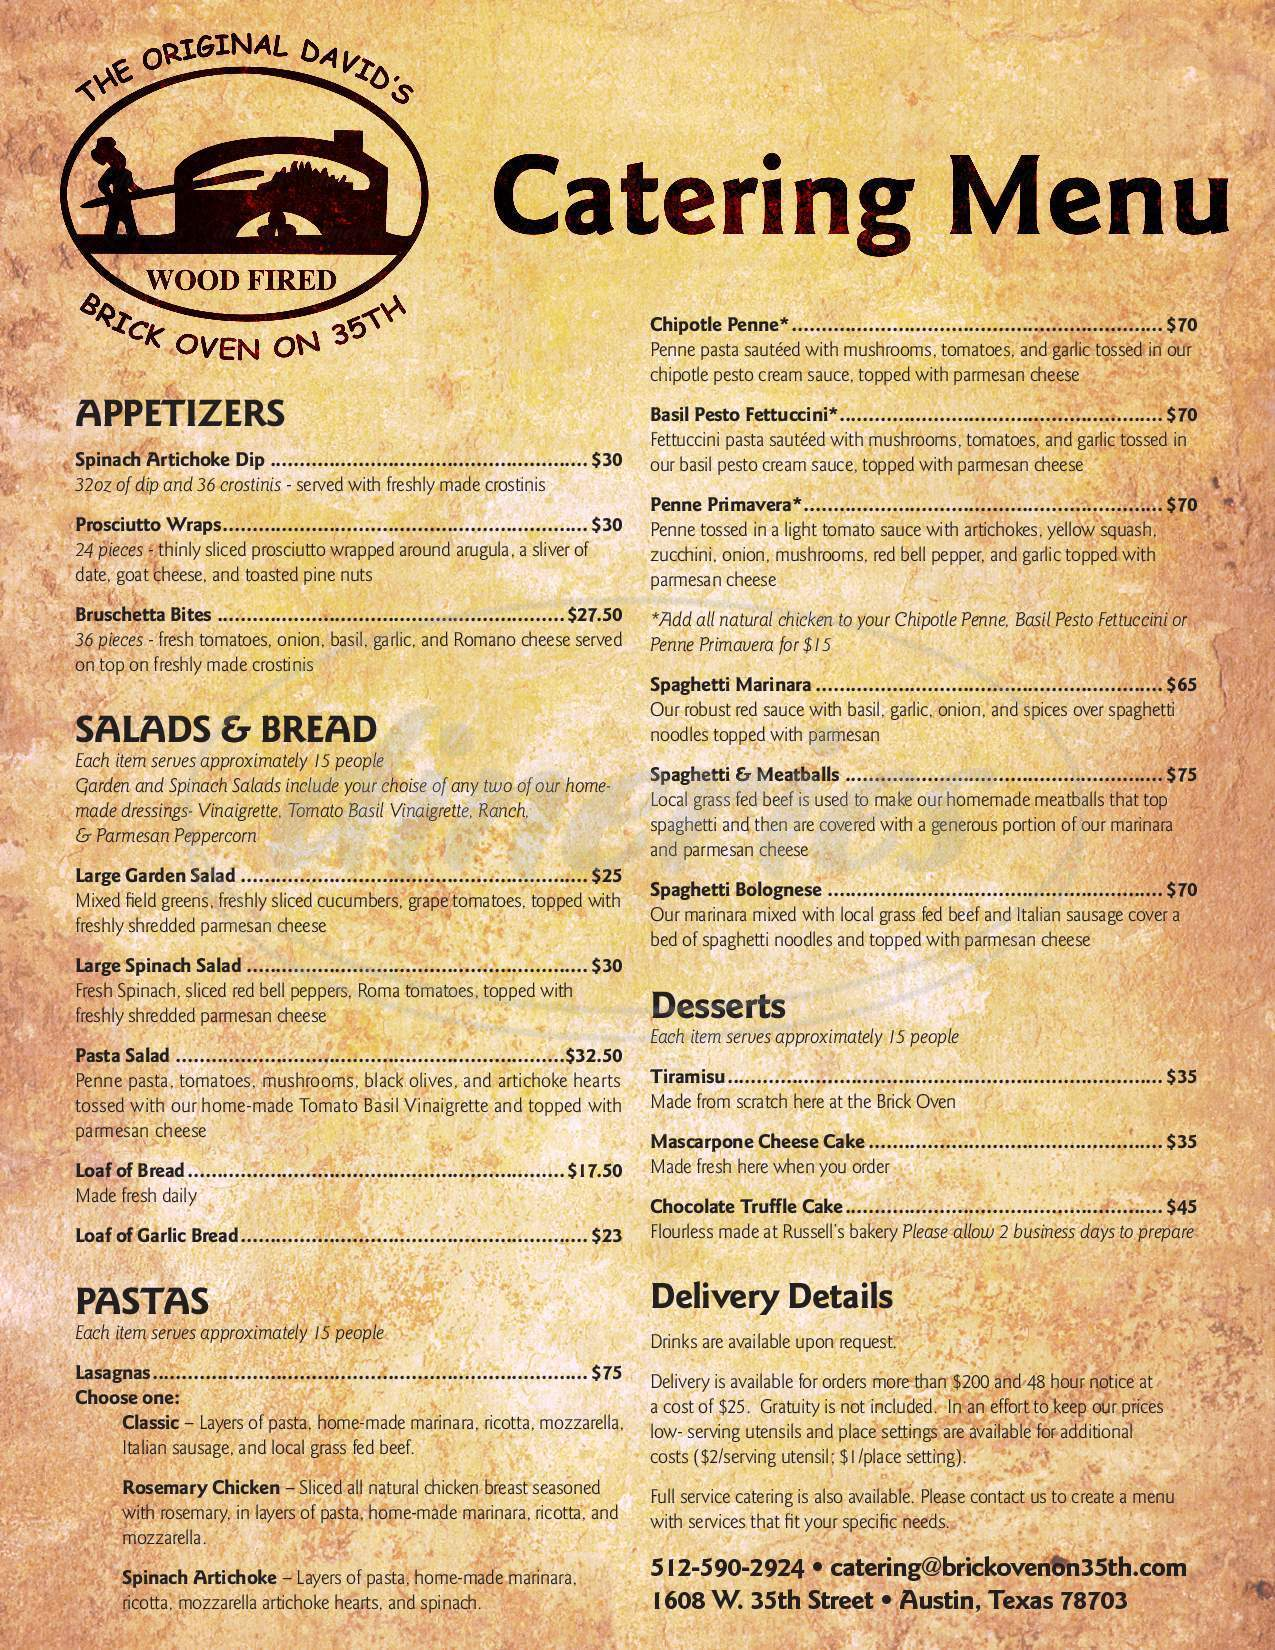 menu for Brick Oven on 35th